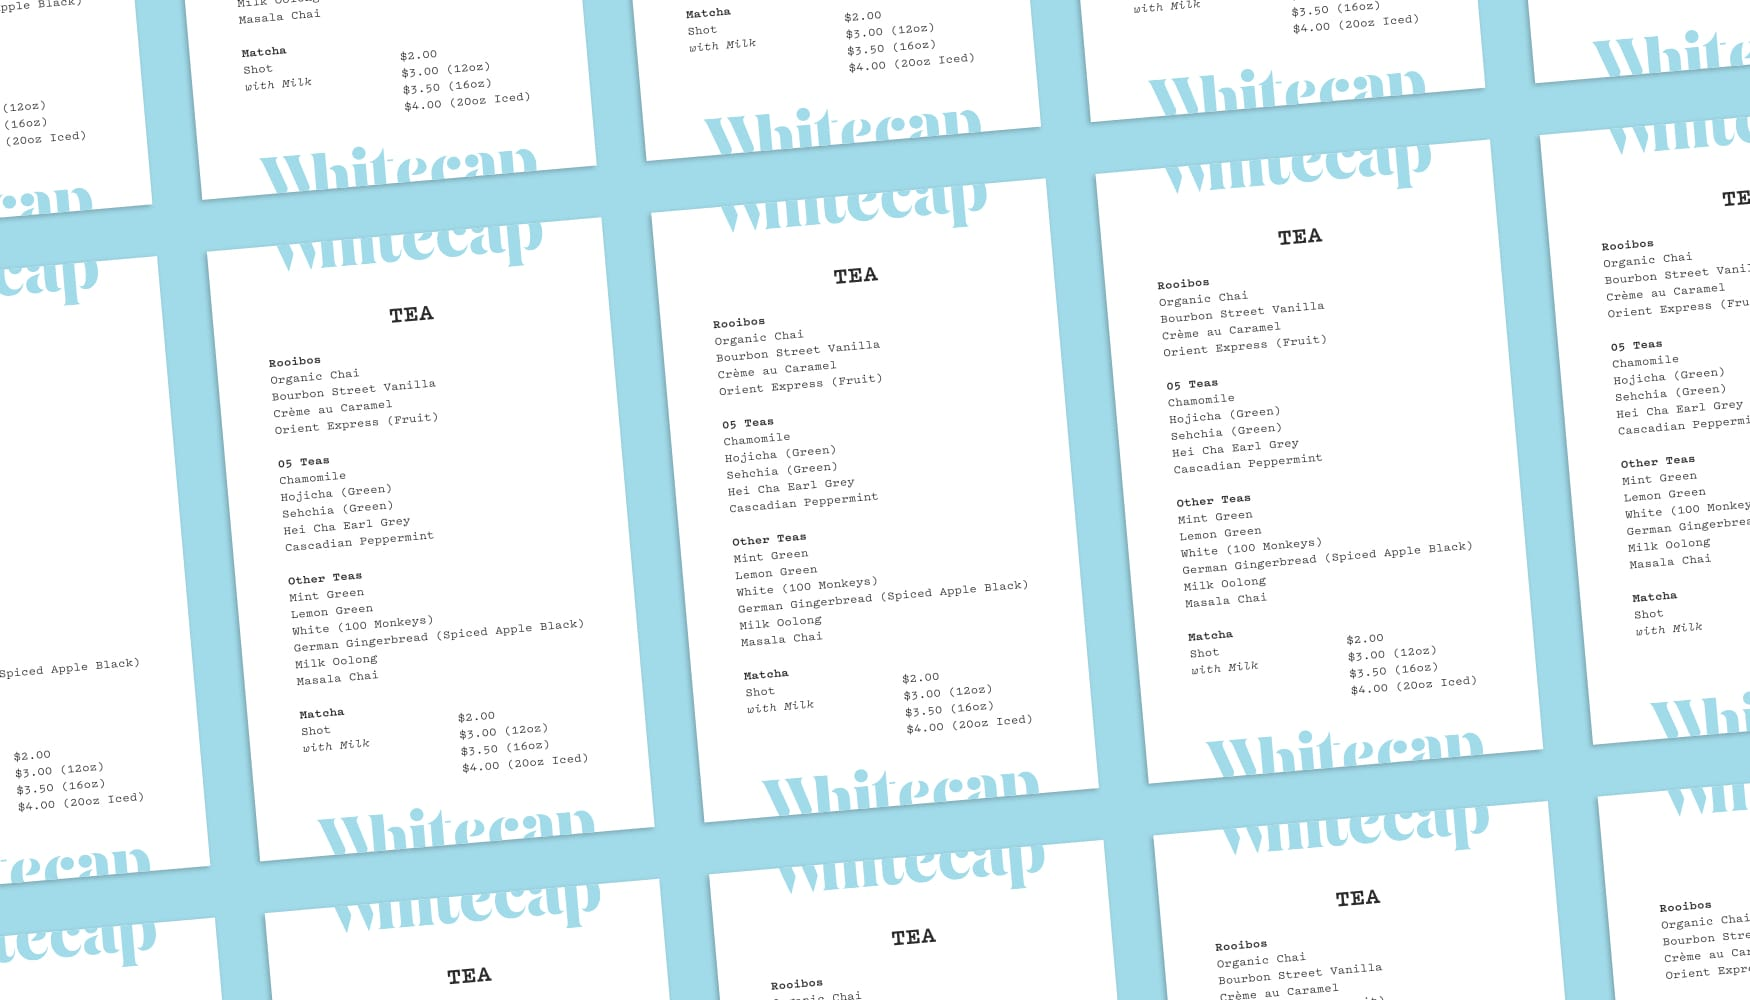 Whitecap Tea Menus